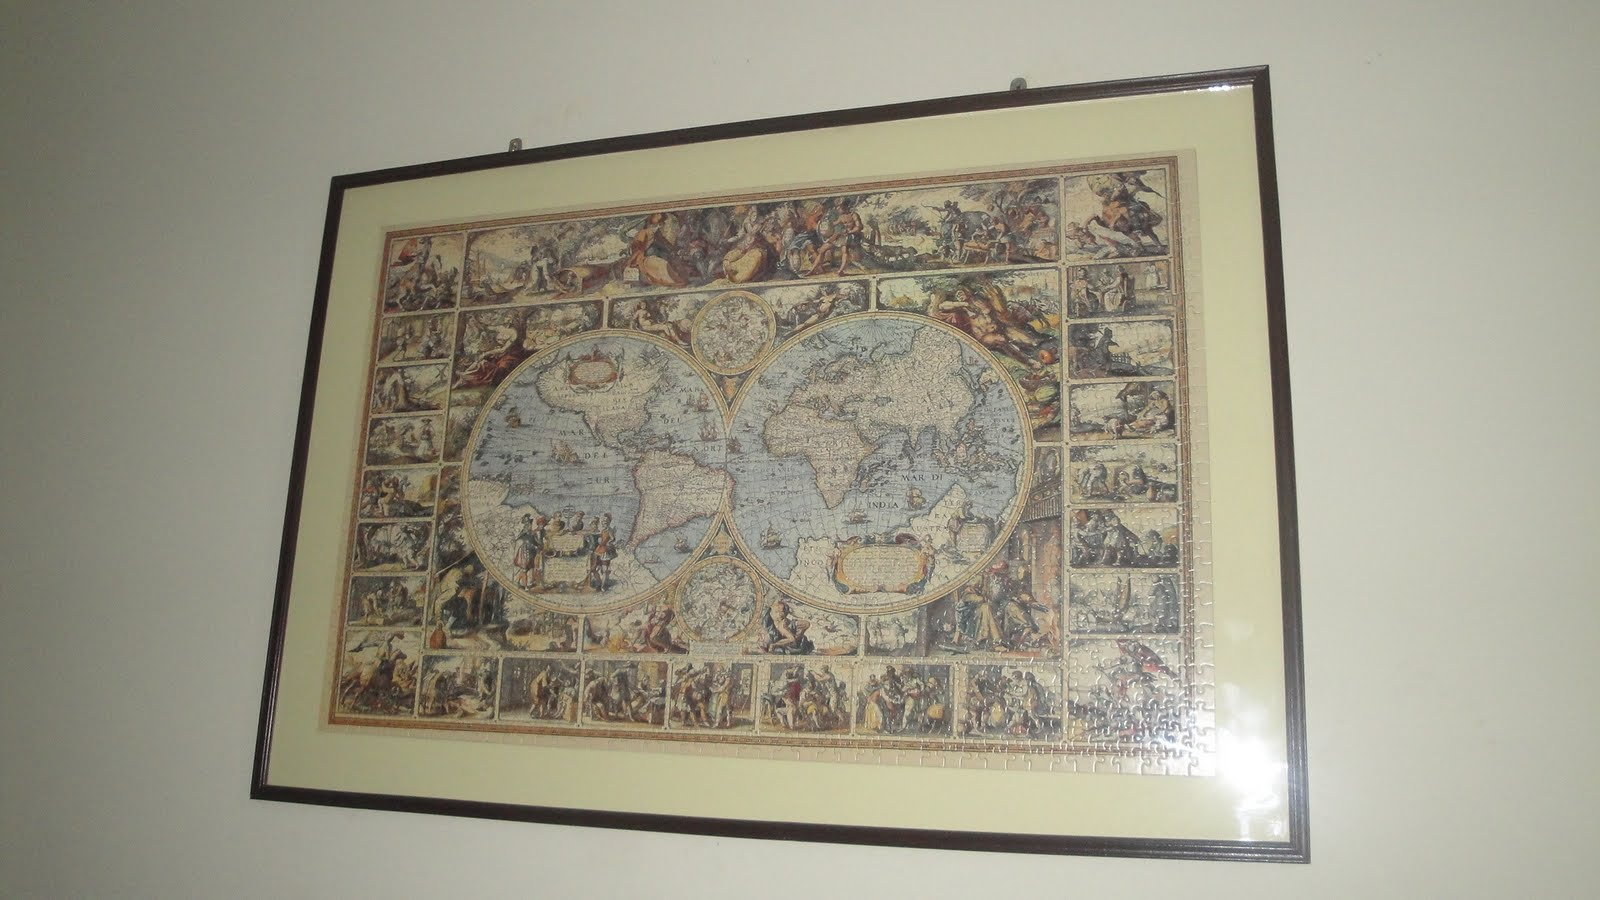 Indika rathnasekaras blog antique world map jigsaw puzzle antique world map jigsaw puzzle gumiabroncs